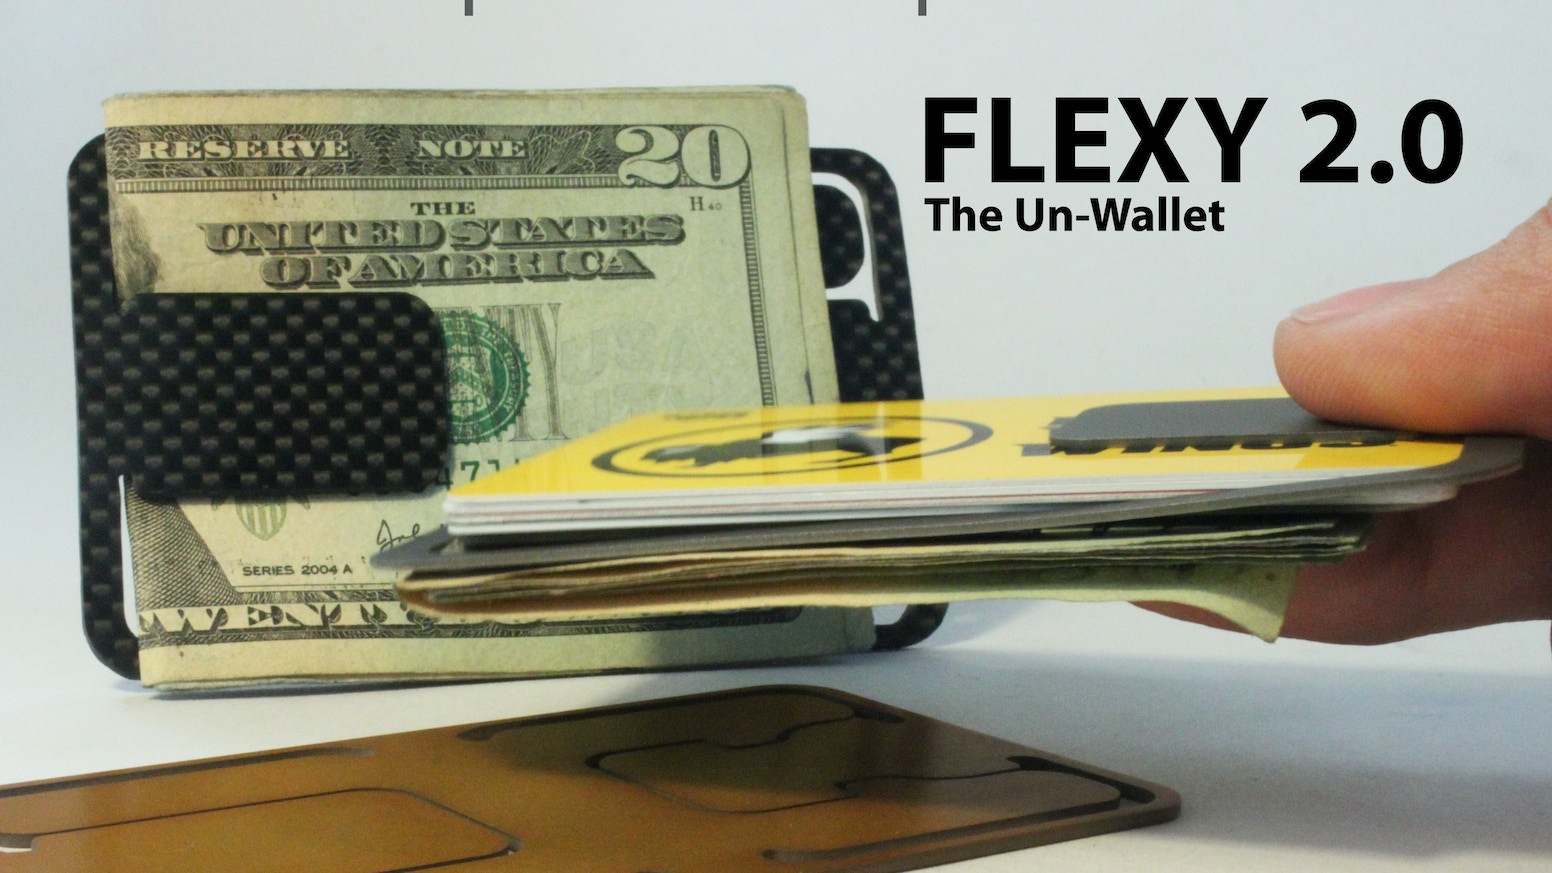 Like no other minimalist wallet. Made in the USA from Titanium, Aluminum, and Carbon Fiber.